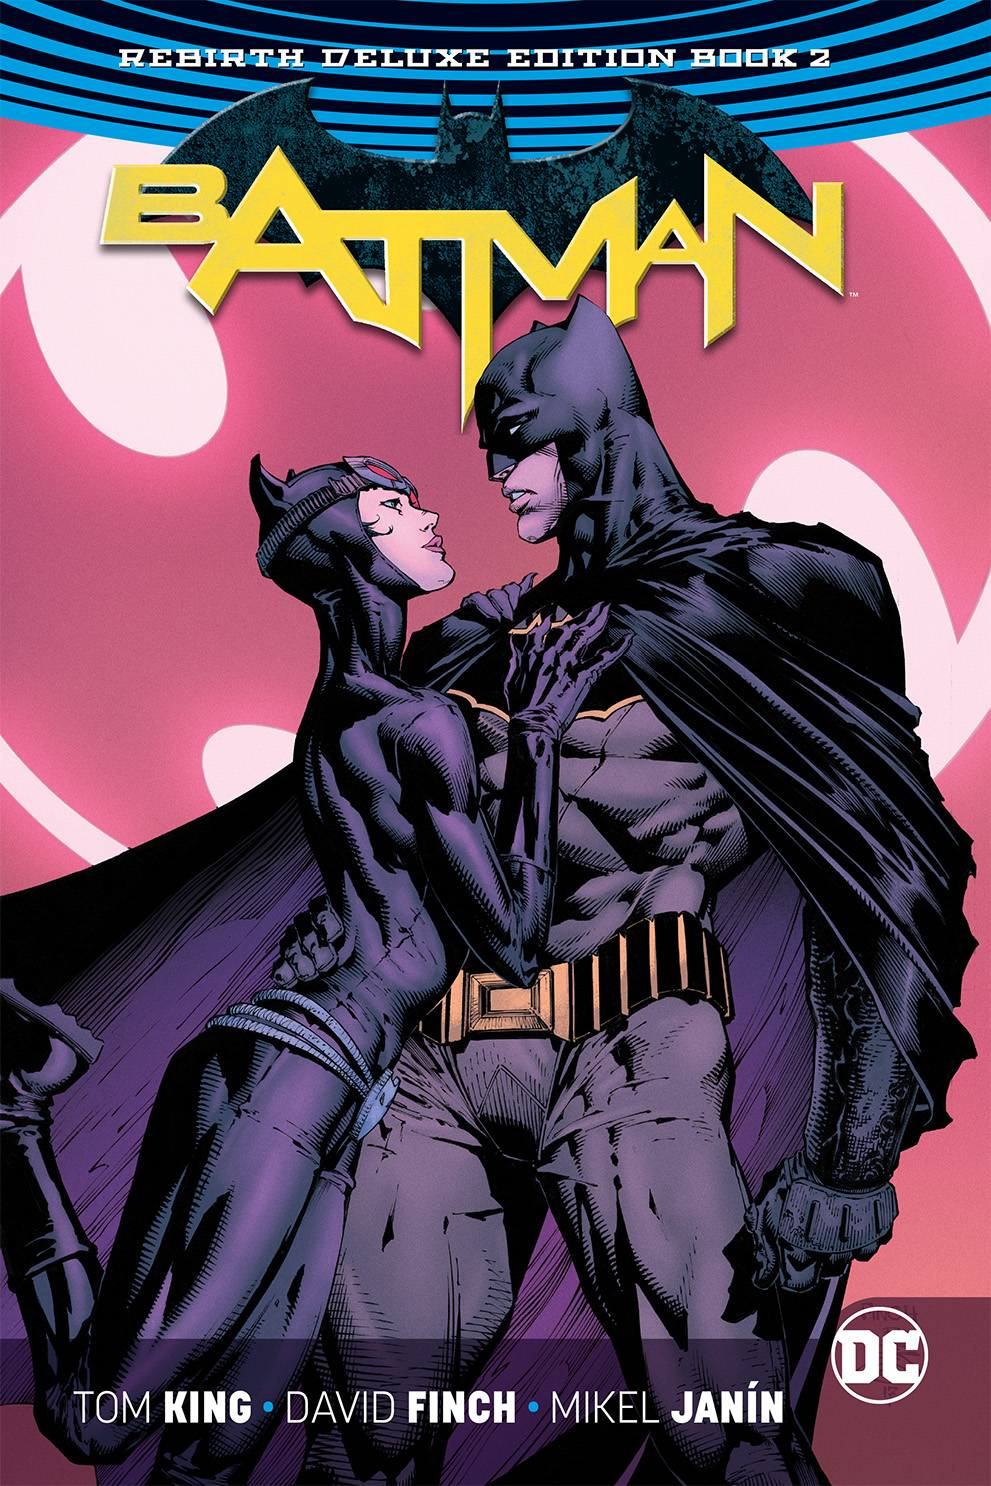 BATMAN REBIRTH DLX COLL HC 2.jpg